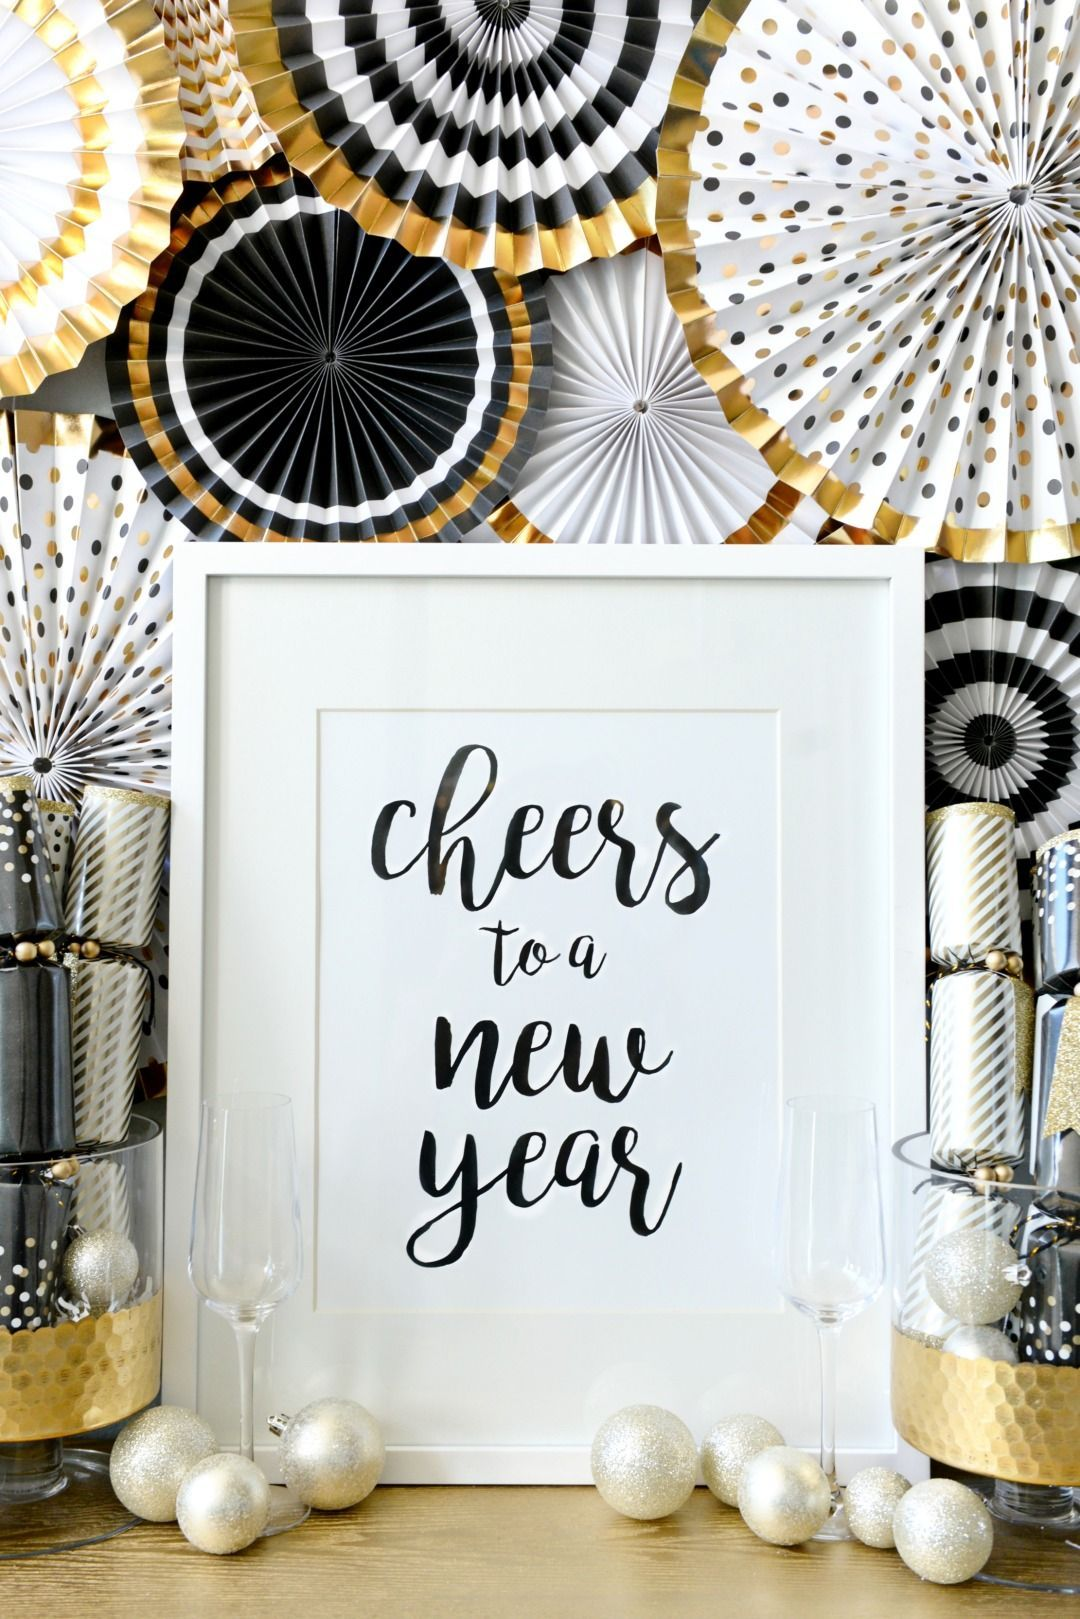 make your new years eve party shine with decor ideas that are easy to accomplish last minute black and gold is the name of the game for a festive new